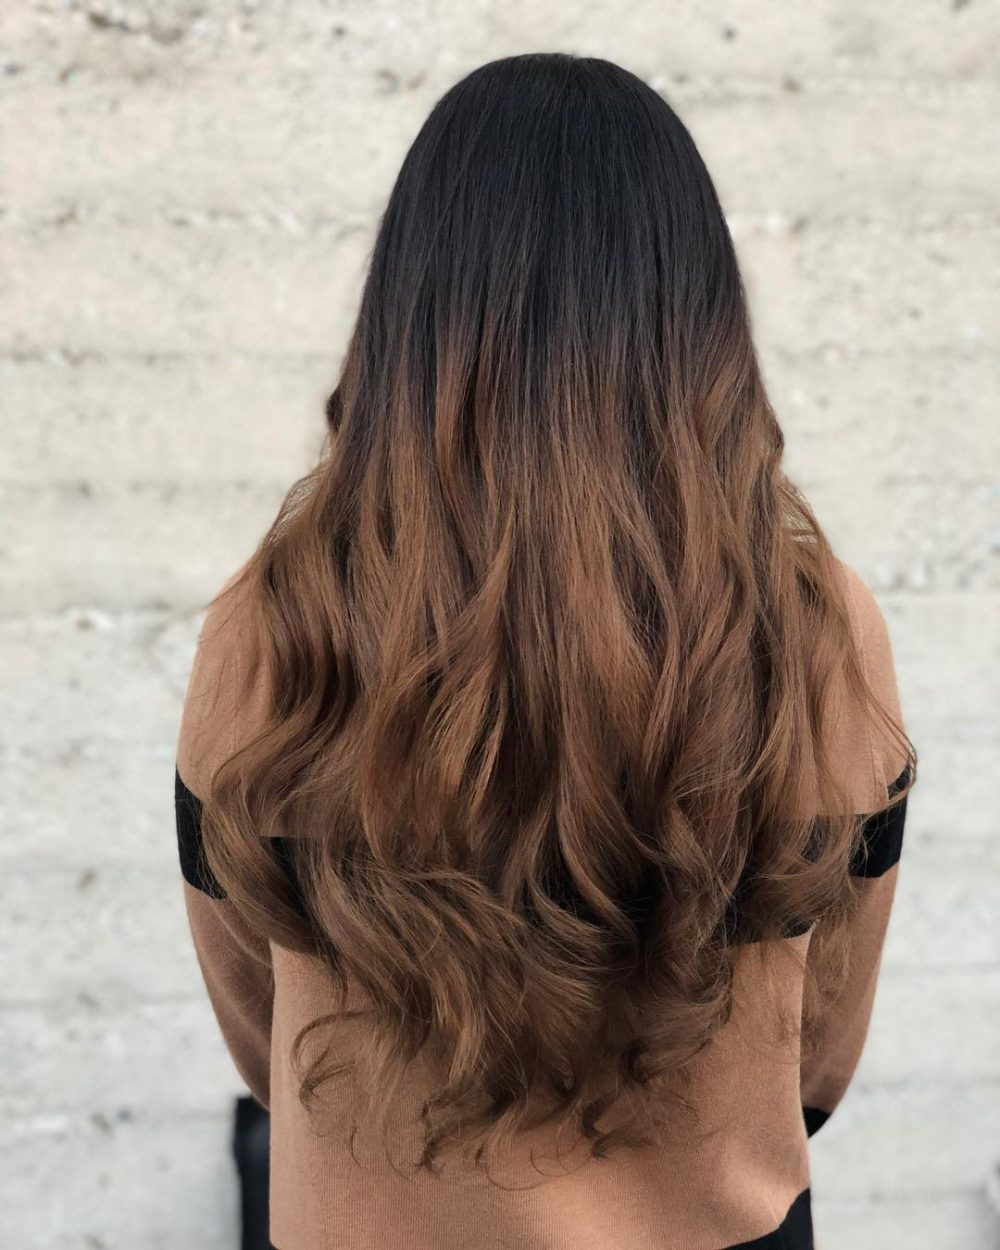 23 Long Ombre Hair Ideas That Are Swoon-Worthy